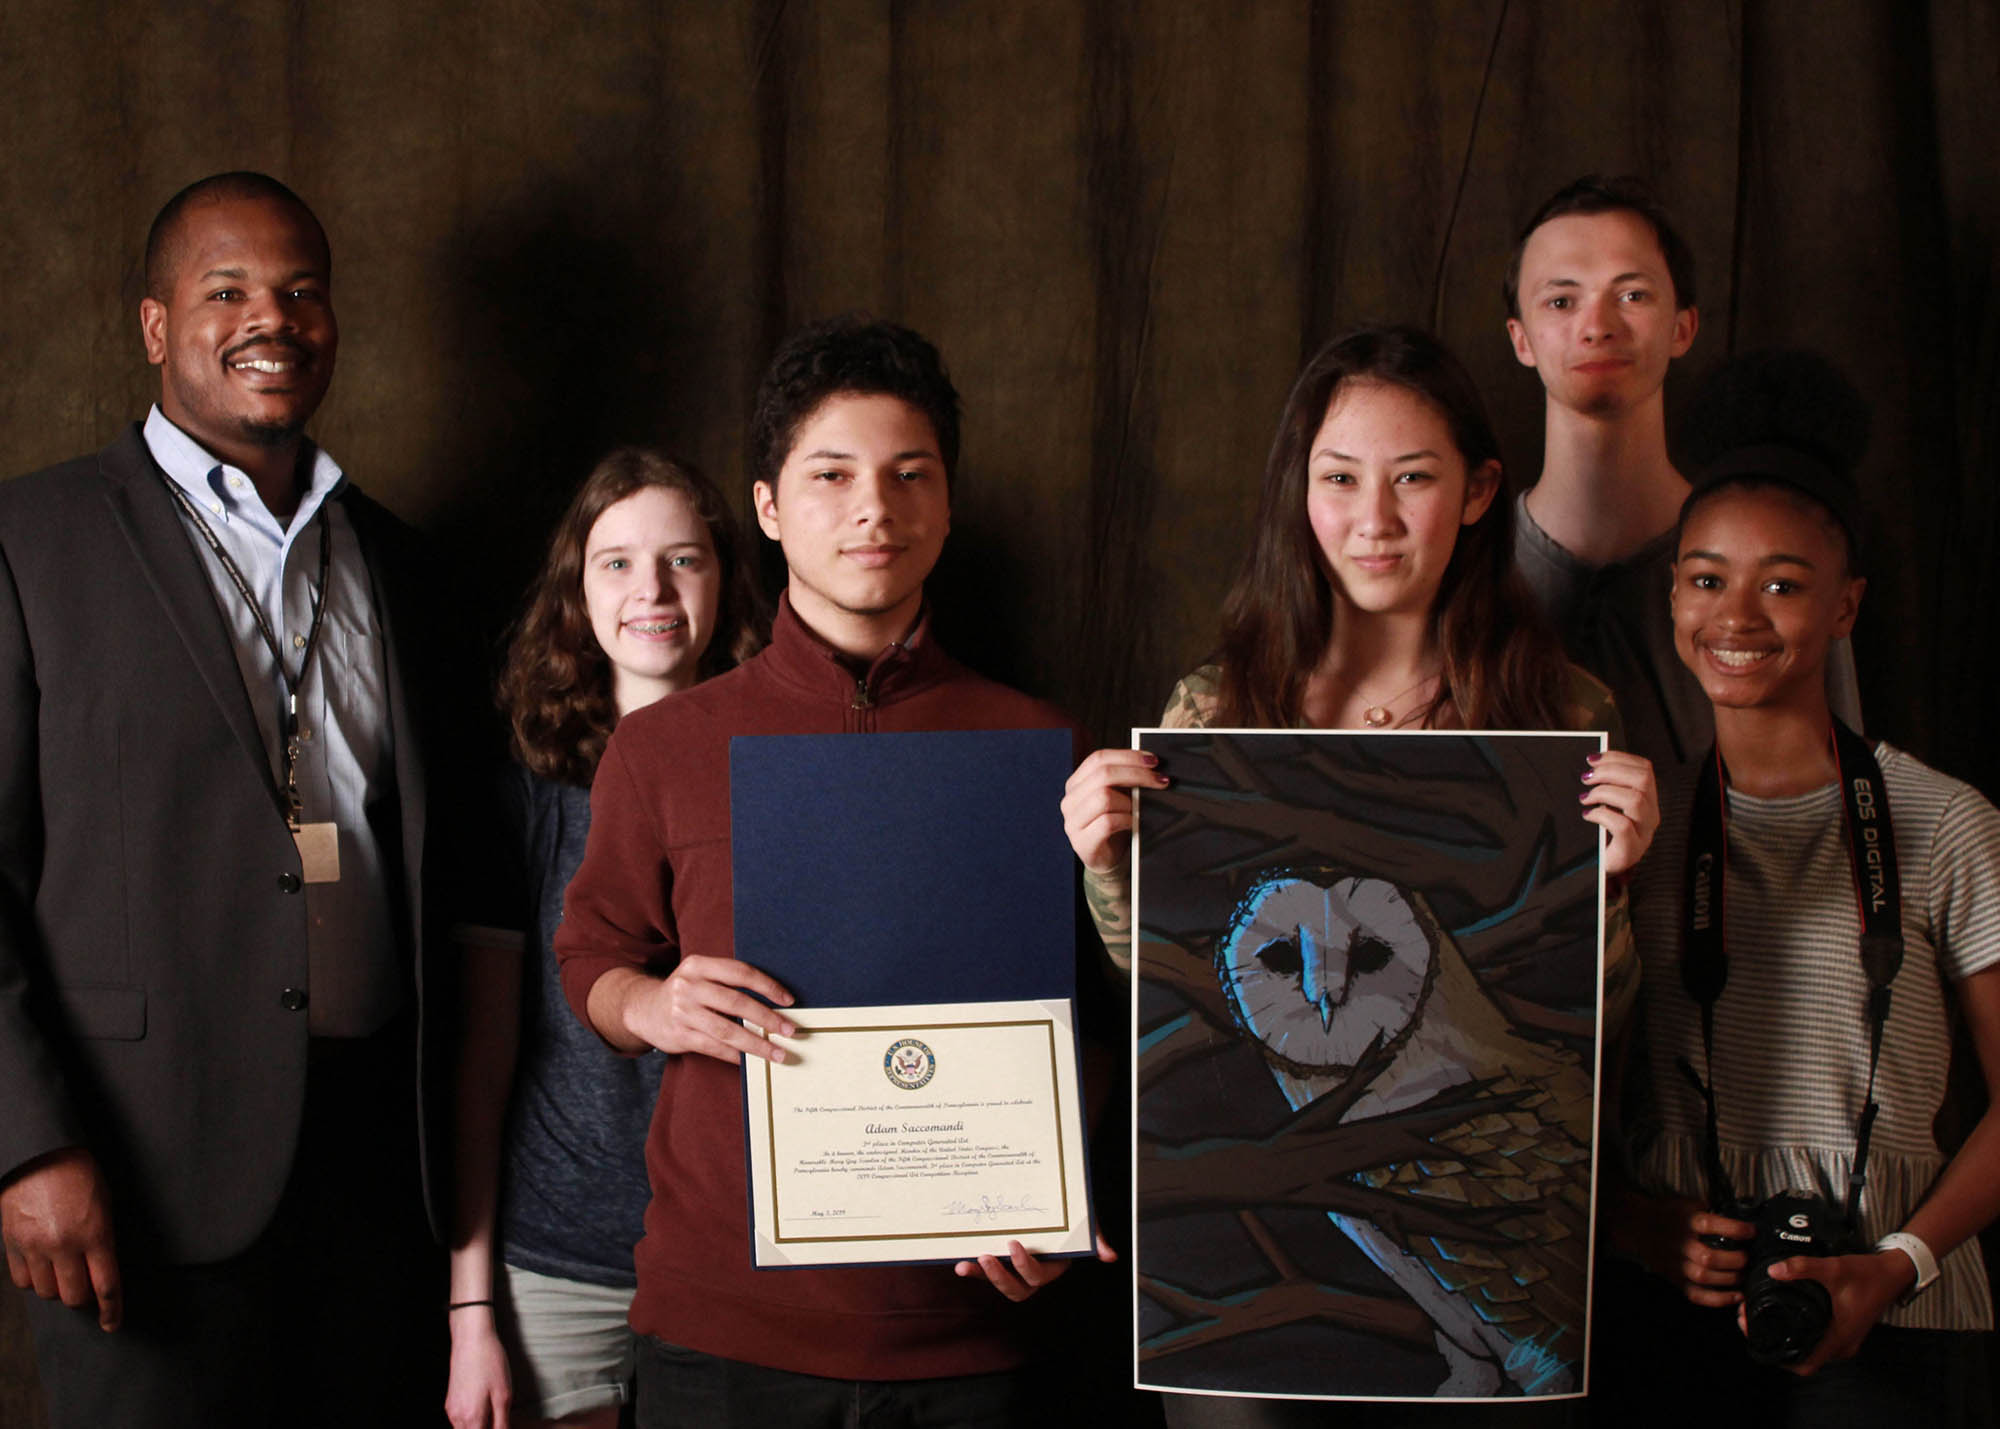 Award-winning Strath Haven artists at the Congressional Art Competition Show joined (left to right) SHHS Principal Dr. Kris Brown; Adie Woolf: 3rd Place for Printmaking; Adam Saccomandi: 3rd Place for Computer Generated Art; Maria Hess: 2nd Place for Black & White Drawing; Will Garrett: First Place for Photography; and Maysie Lewis: 3rd Place for Photography. Absent but represented by his work was Ari Burch: 1st Place for Computer Generated Art.  Photo by Kate Plows.